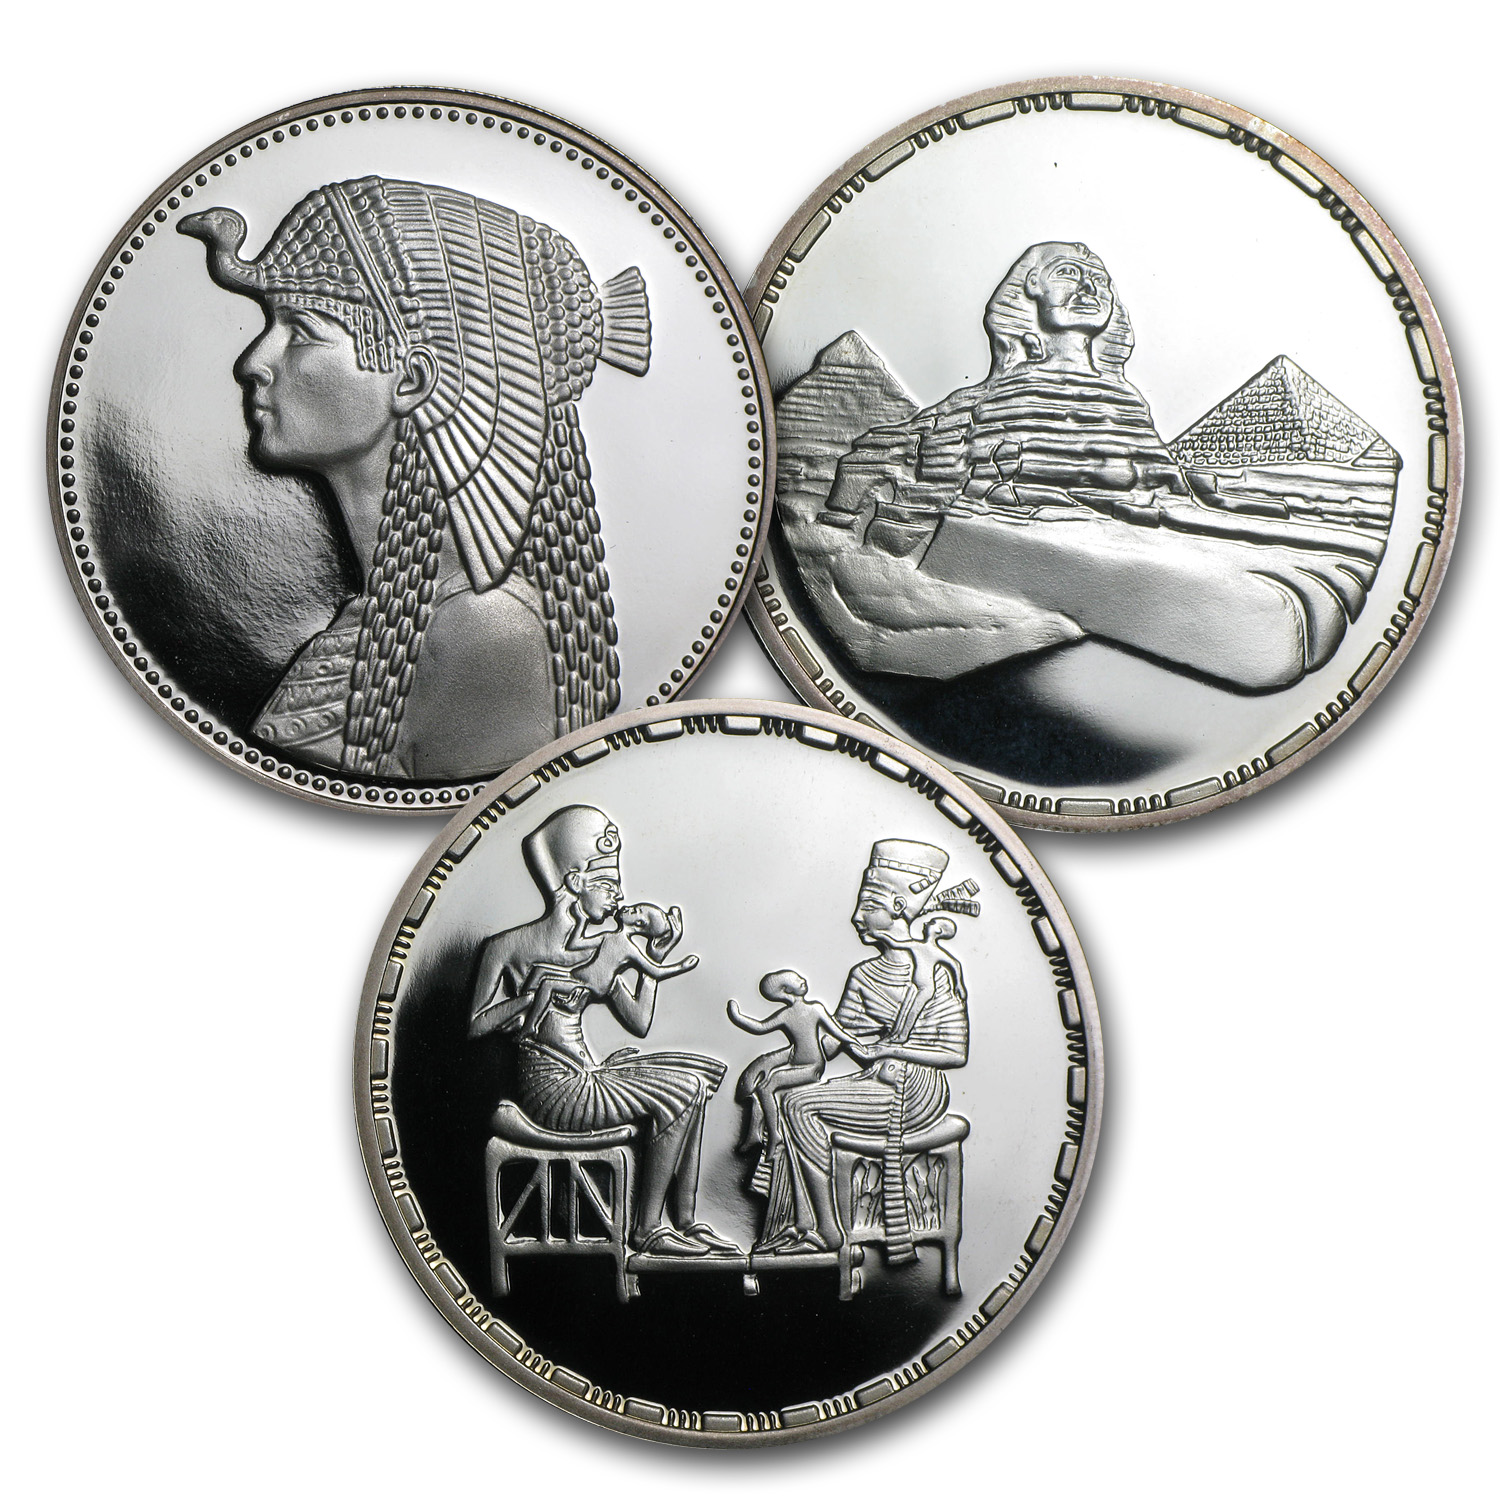 Egypt 1993-1994 Silver 5 Pound Ancient Egypt Proof